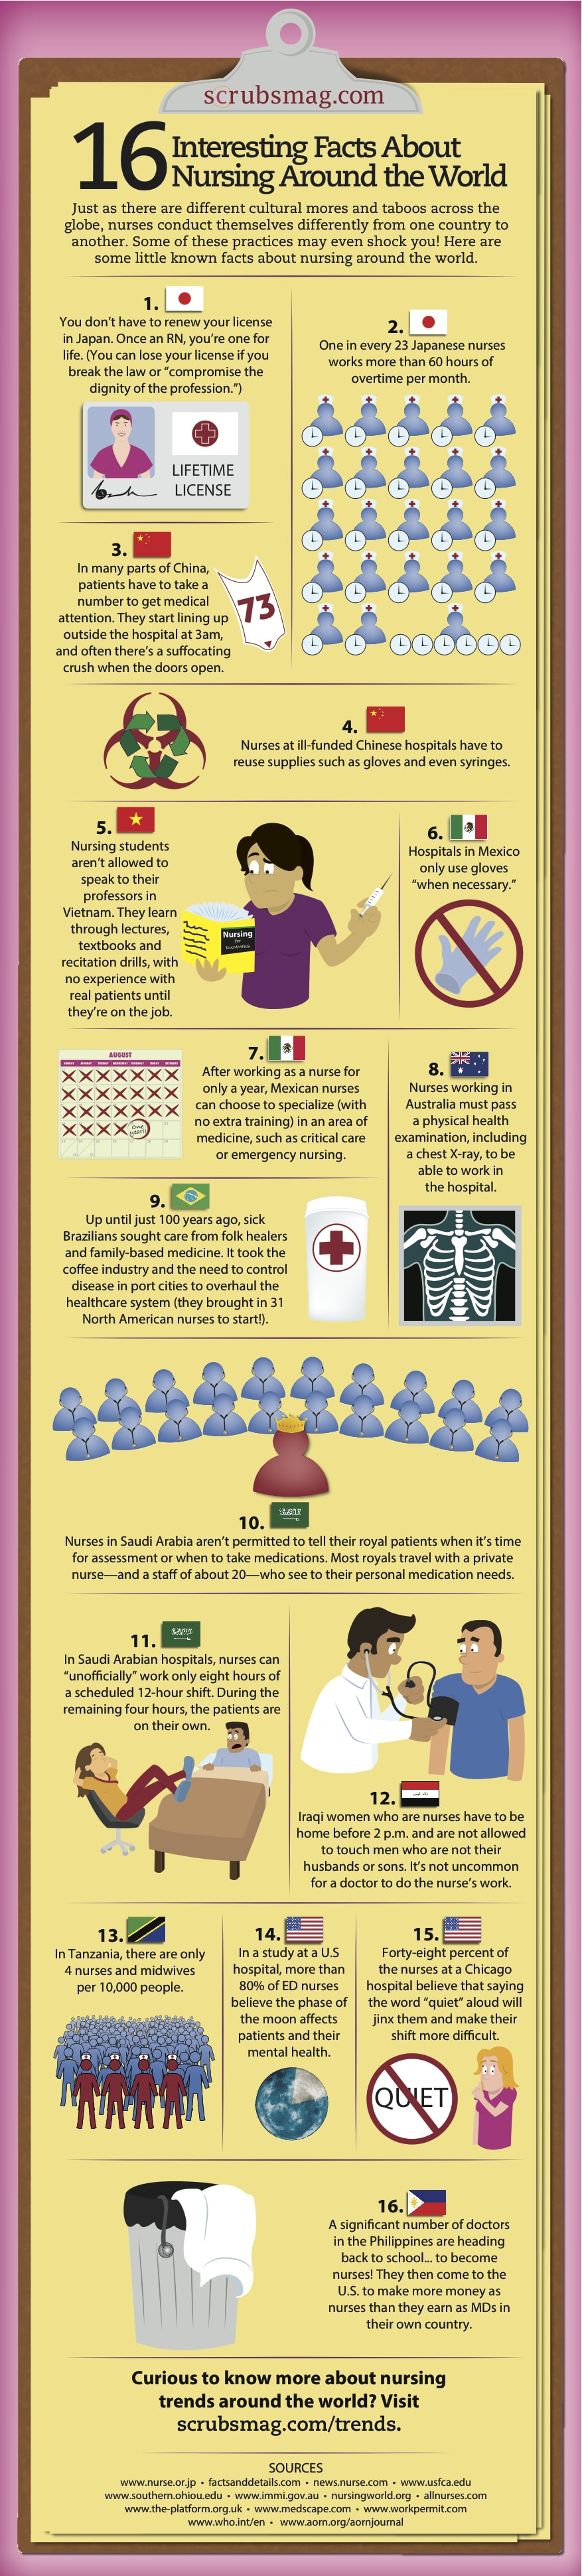 interesting facts about nursing around the world-min